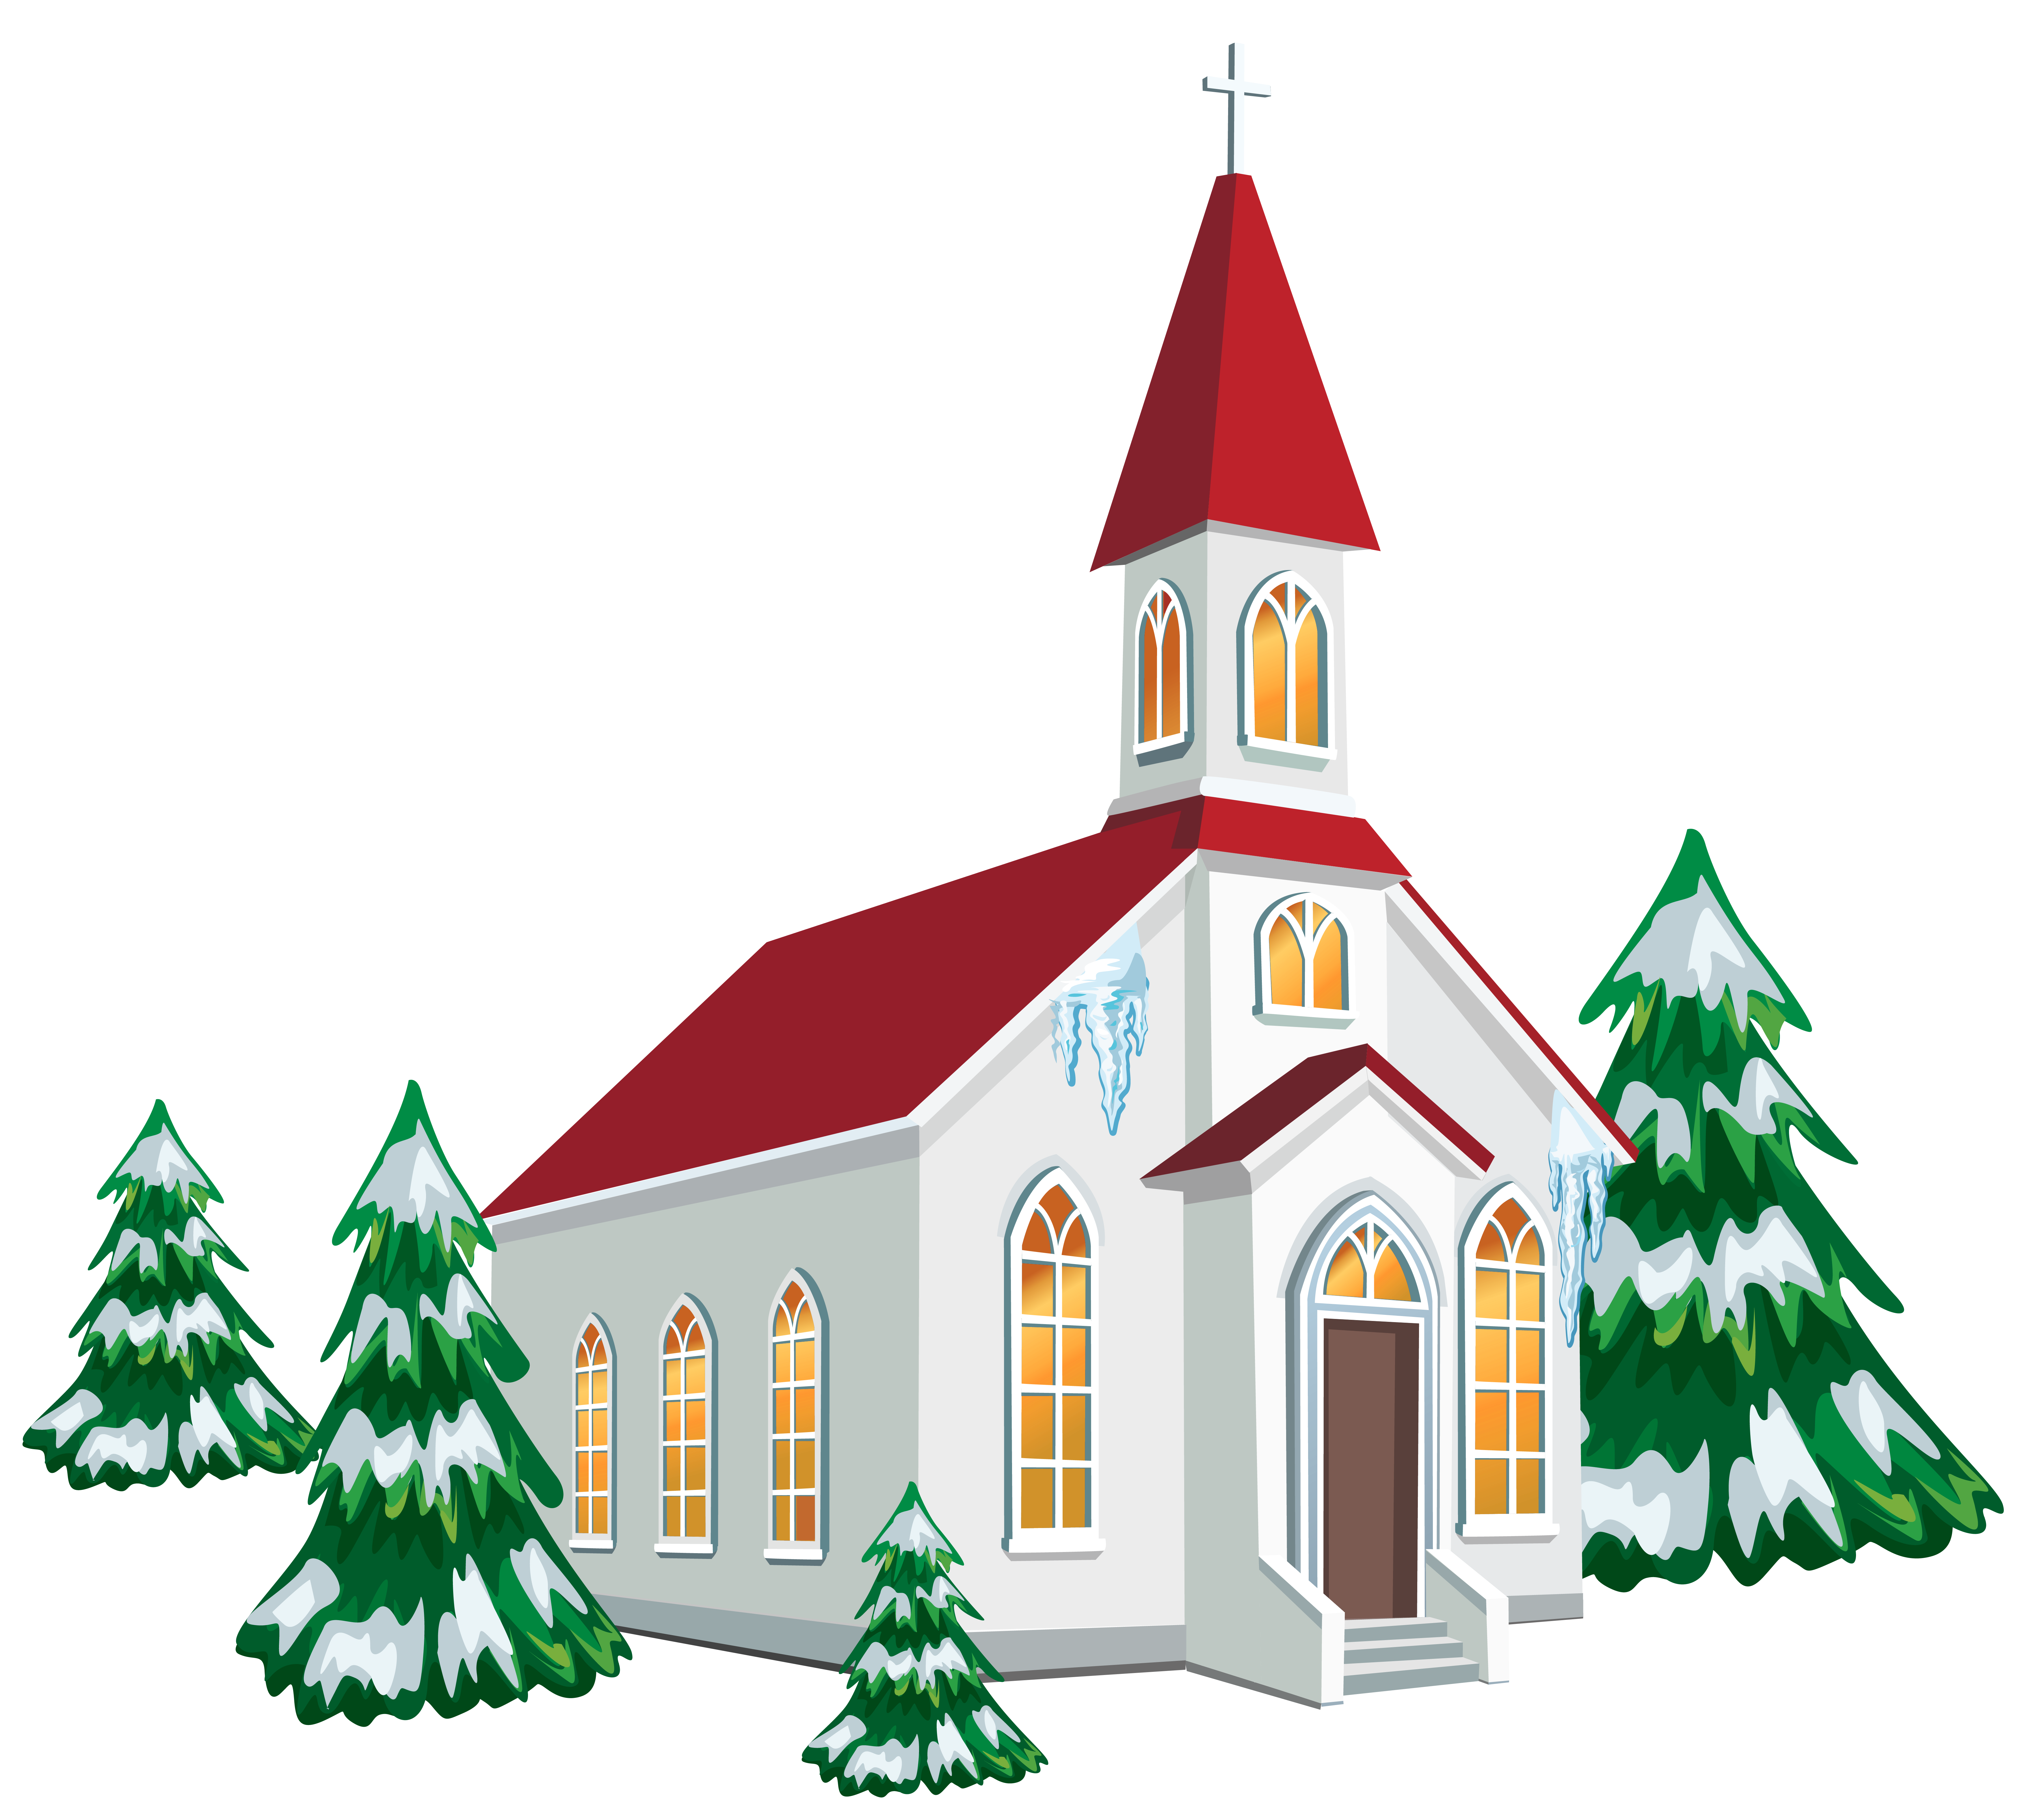 Christmas images religious clipart image black and white library Winter Church with Snow Trees PNG Clipart Image | Gallery ... image black and white library